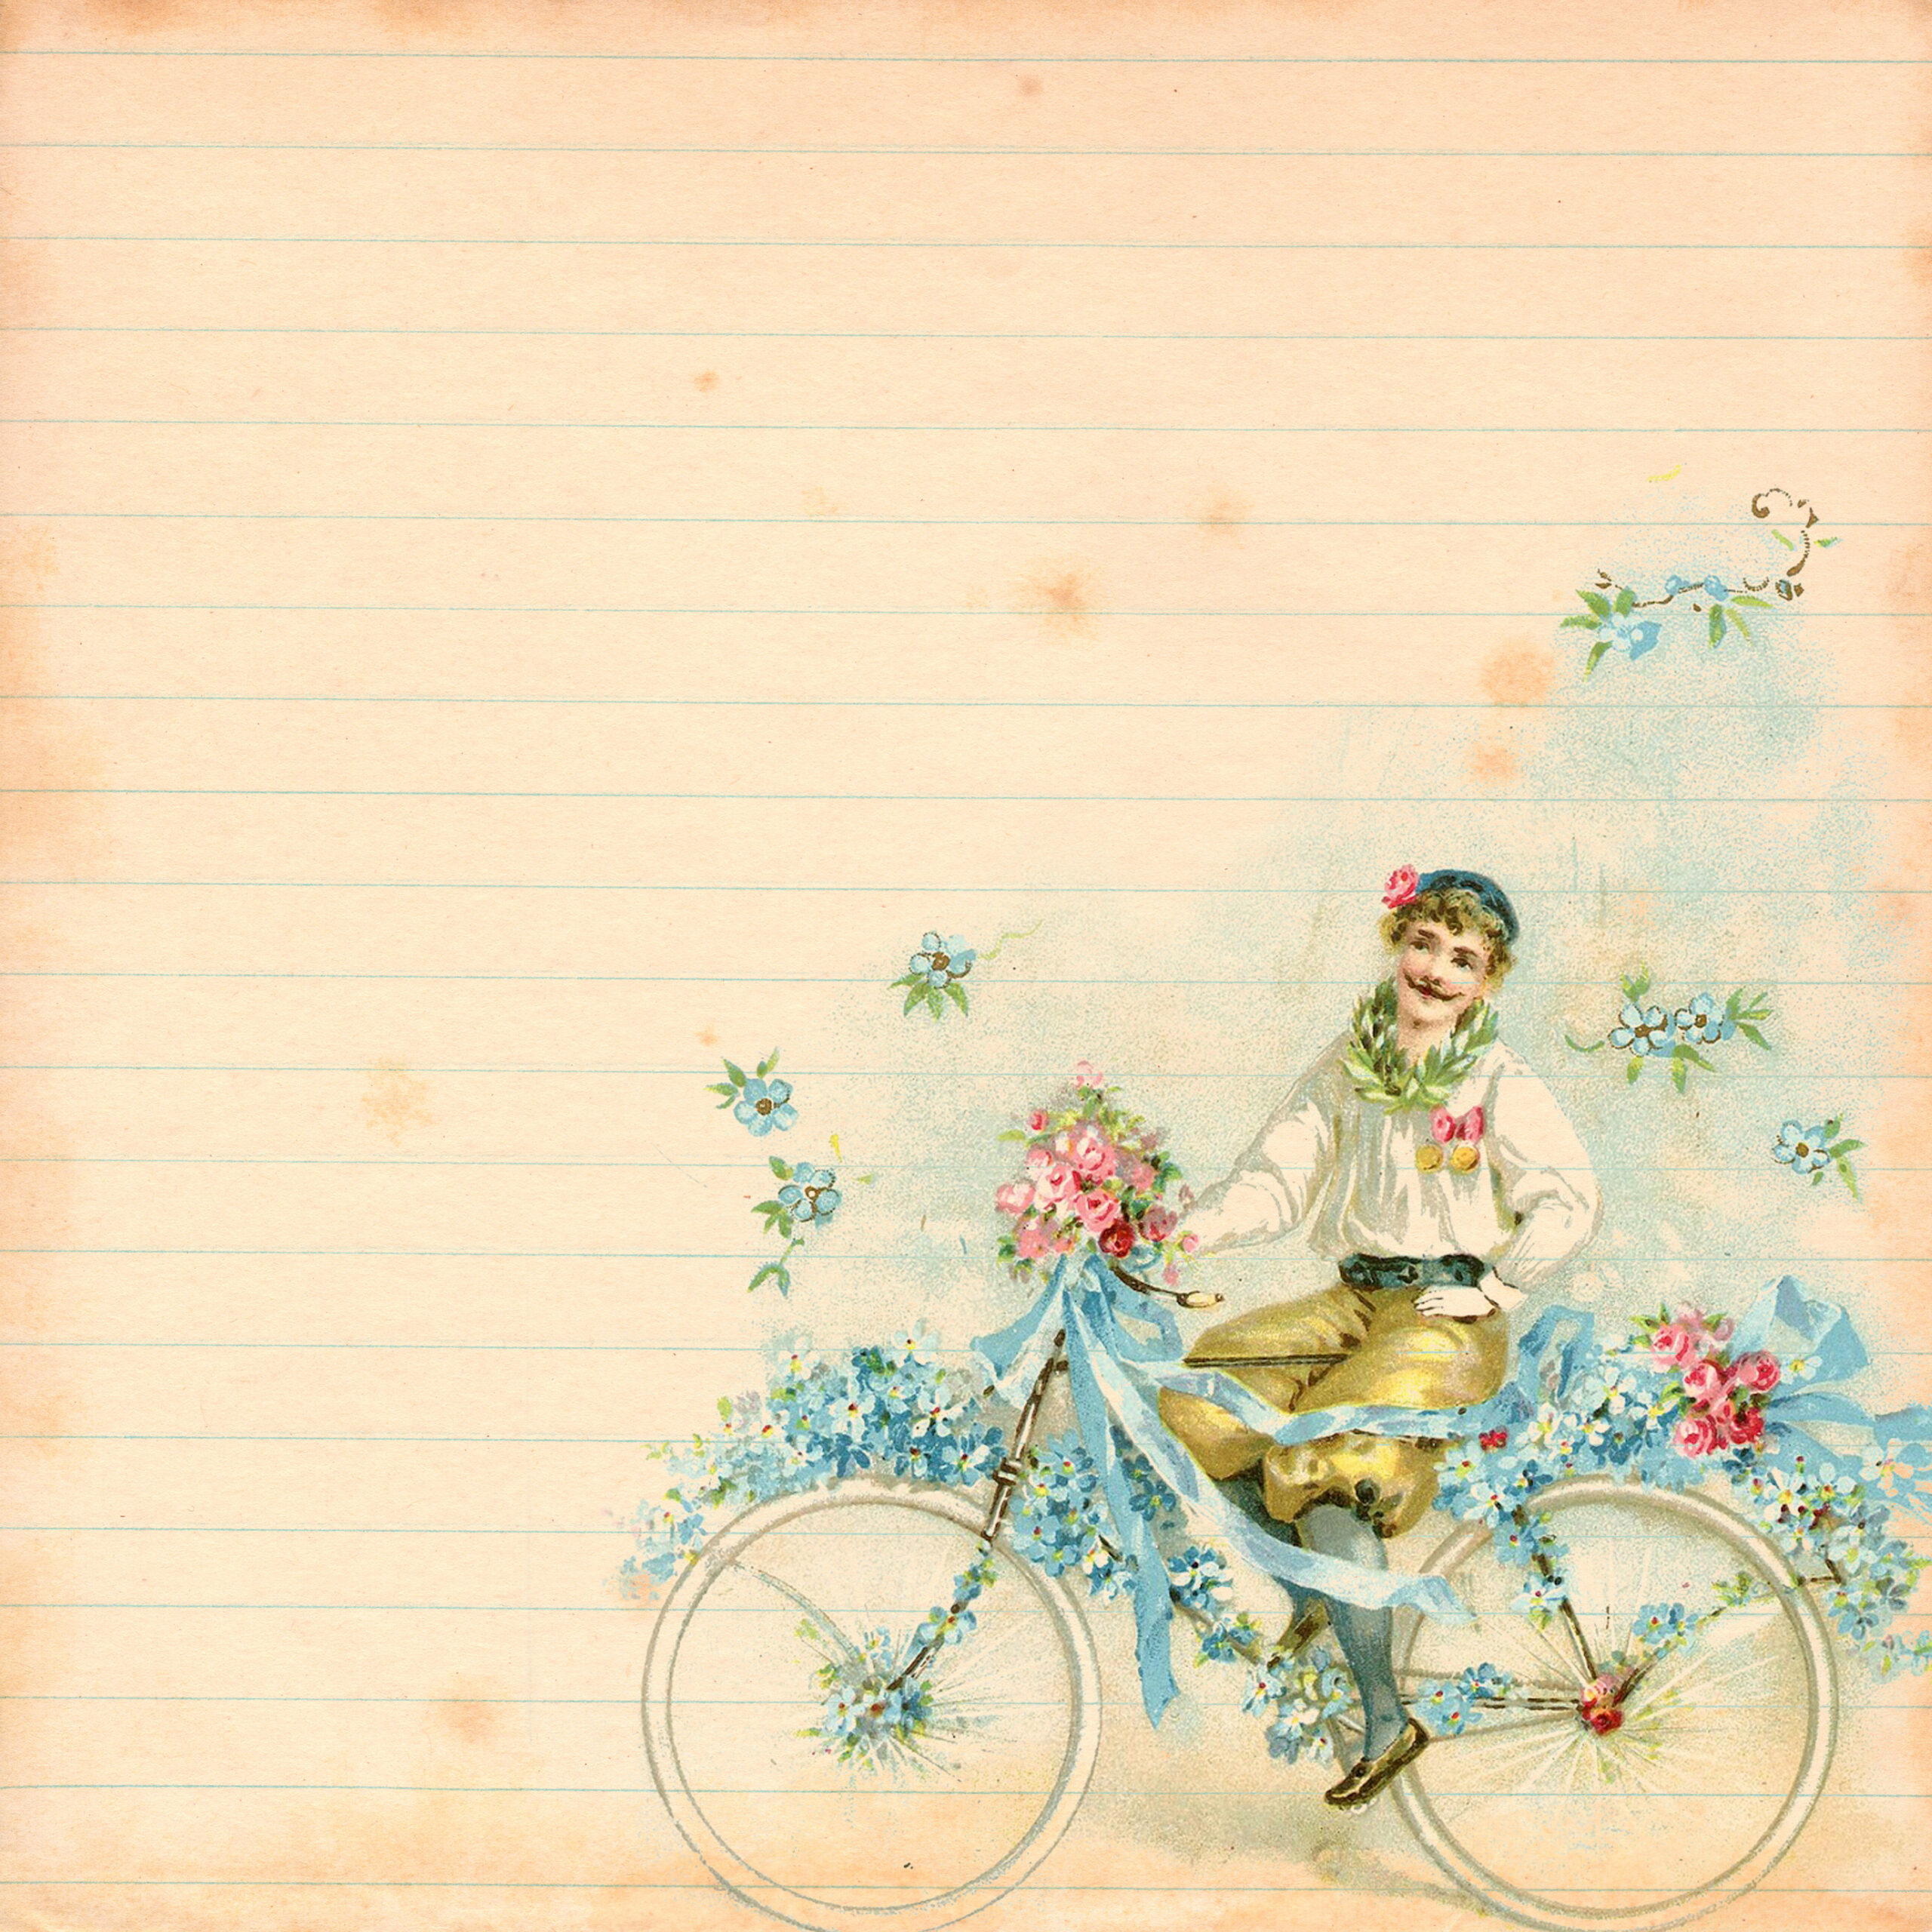 Scrapbook Romantic Vintage Bicycle Digital Paper